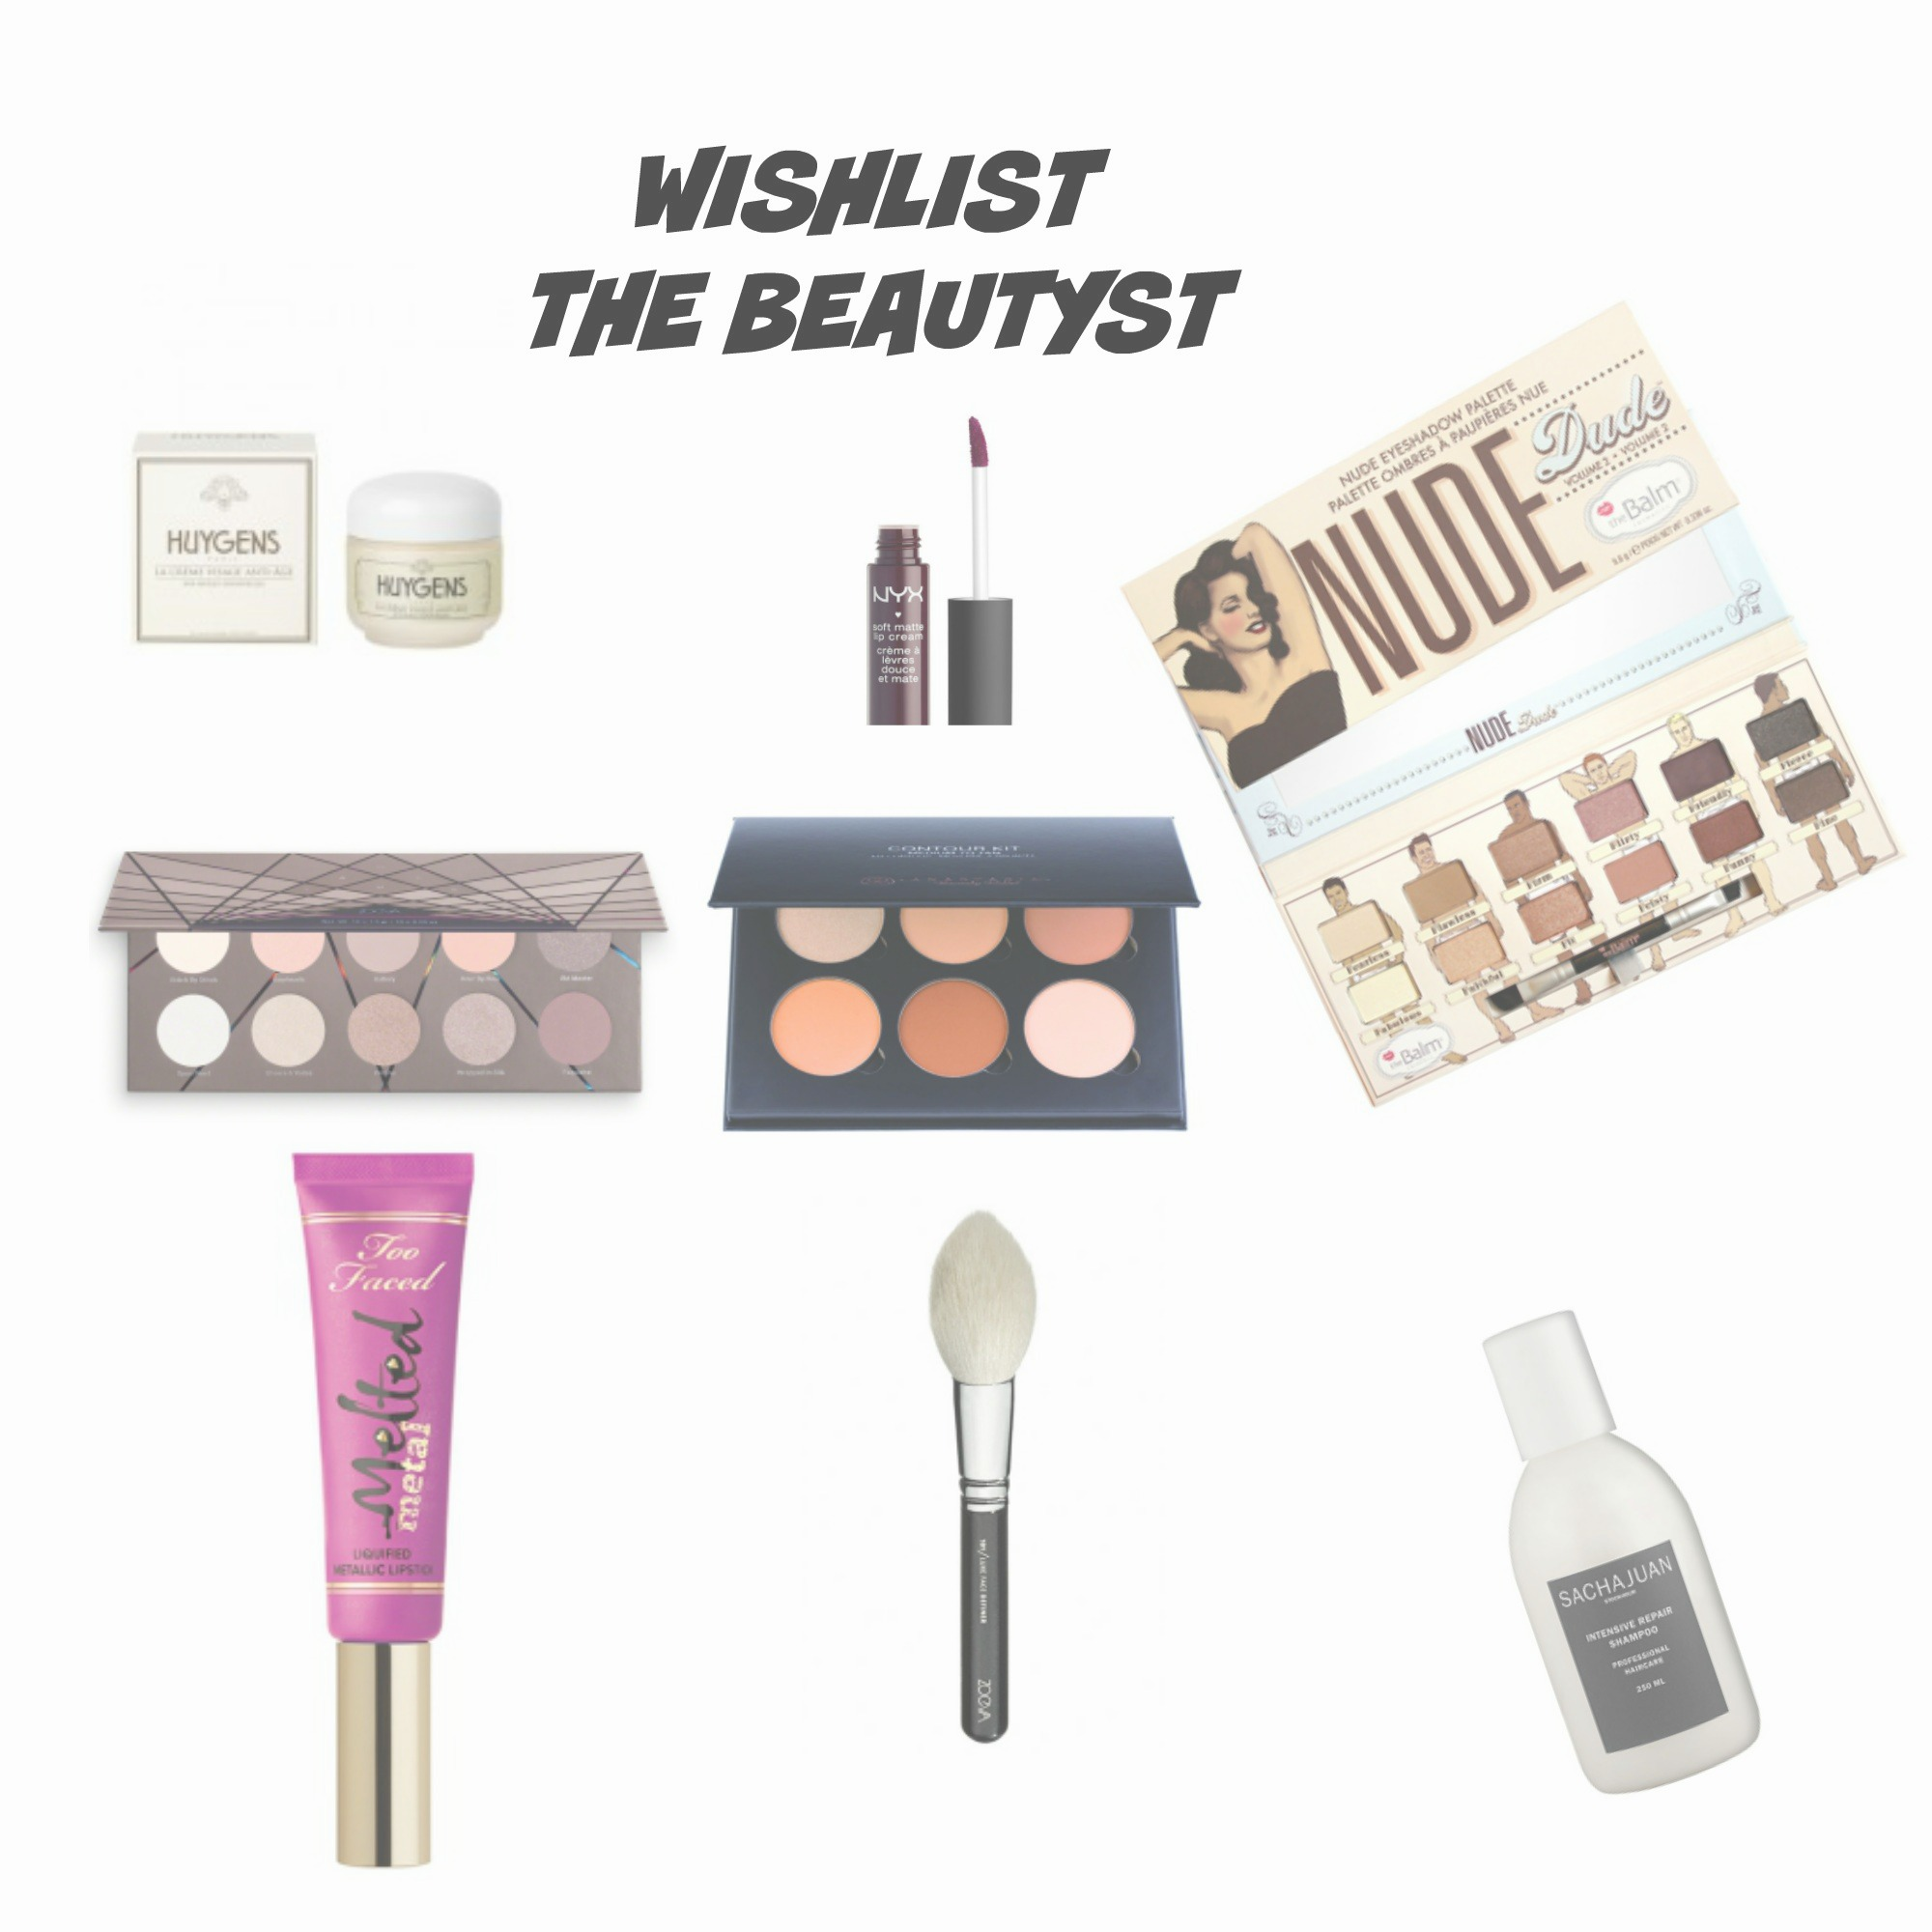 WISHLIST THE BEAUTYST GOOD 2